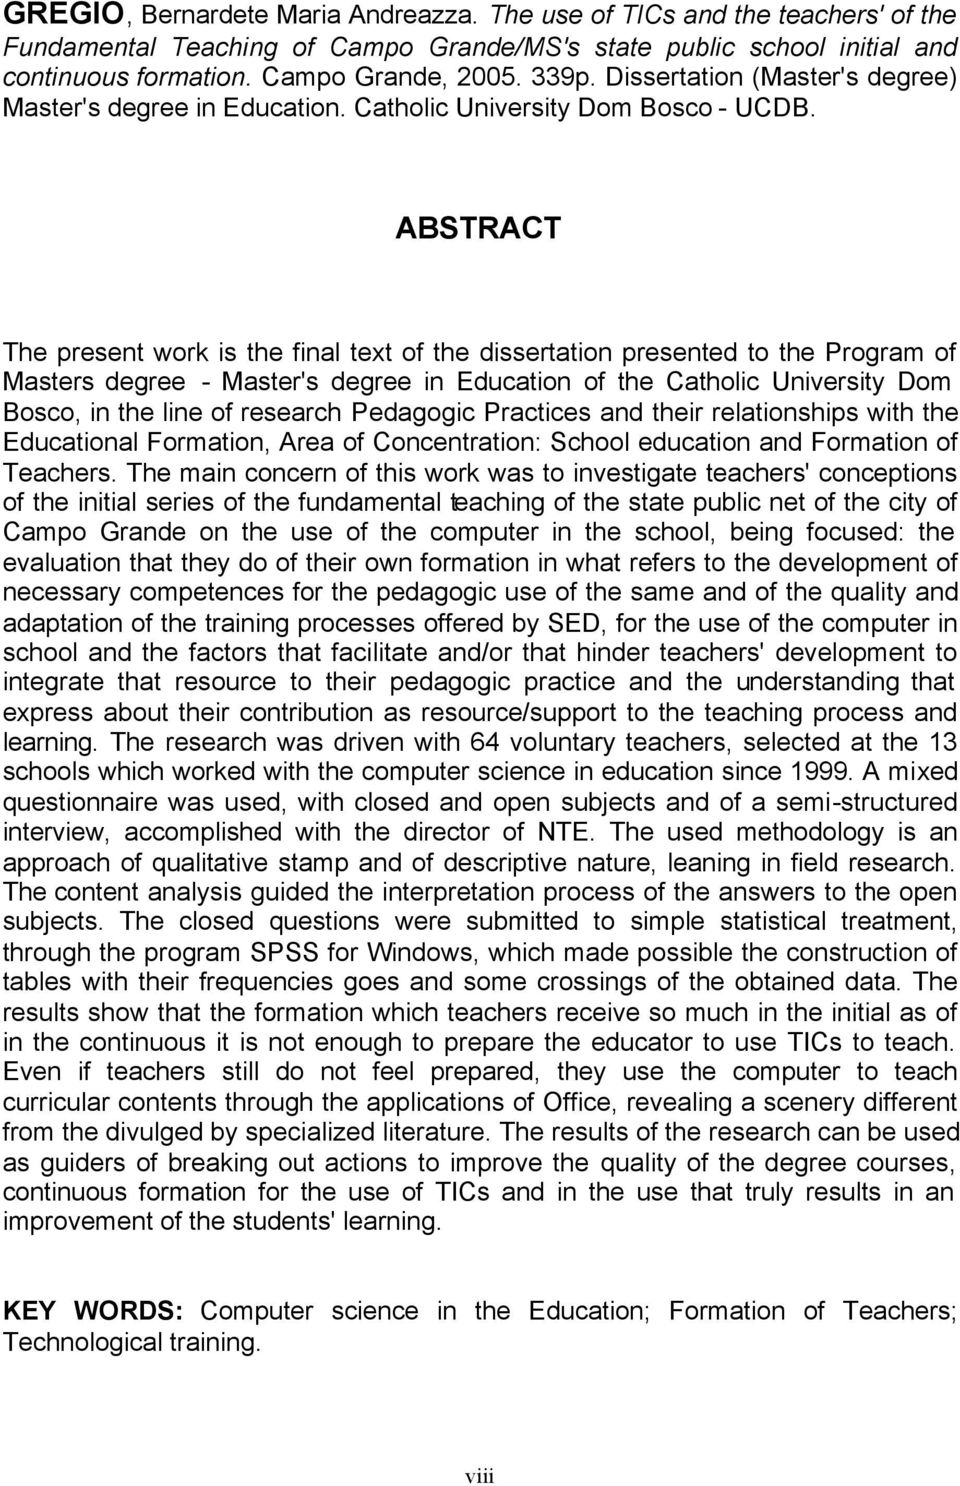 ABSTRACT The present work is the final text of the dissertation presented to the Program of Masters degree - Master's degree in Education of the Catholic University Dom Bosco, in the line of research